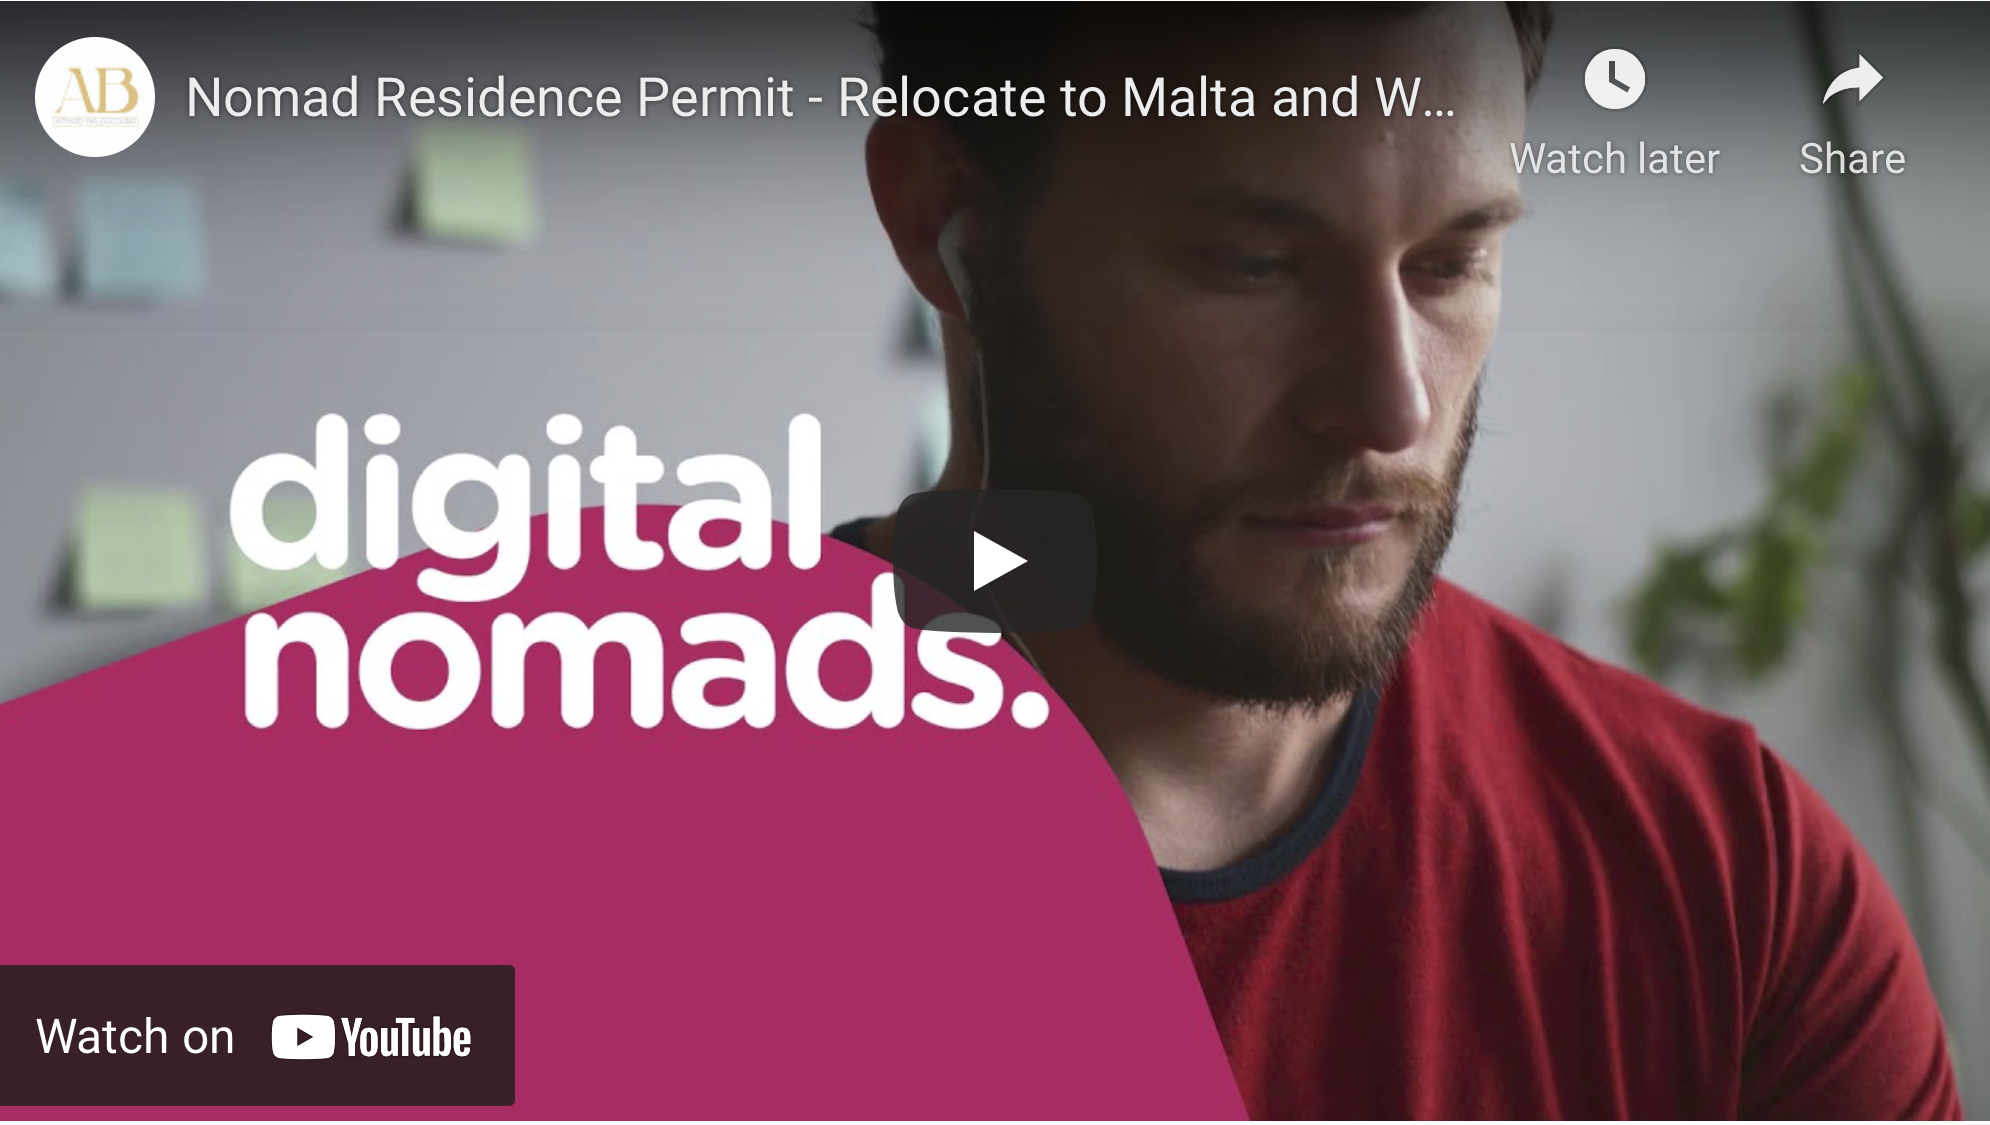 Relocate to Malta with the latest Nomad Residence Permit